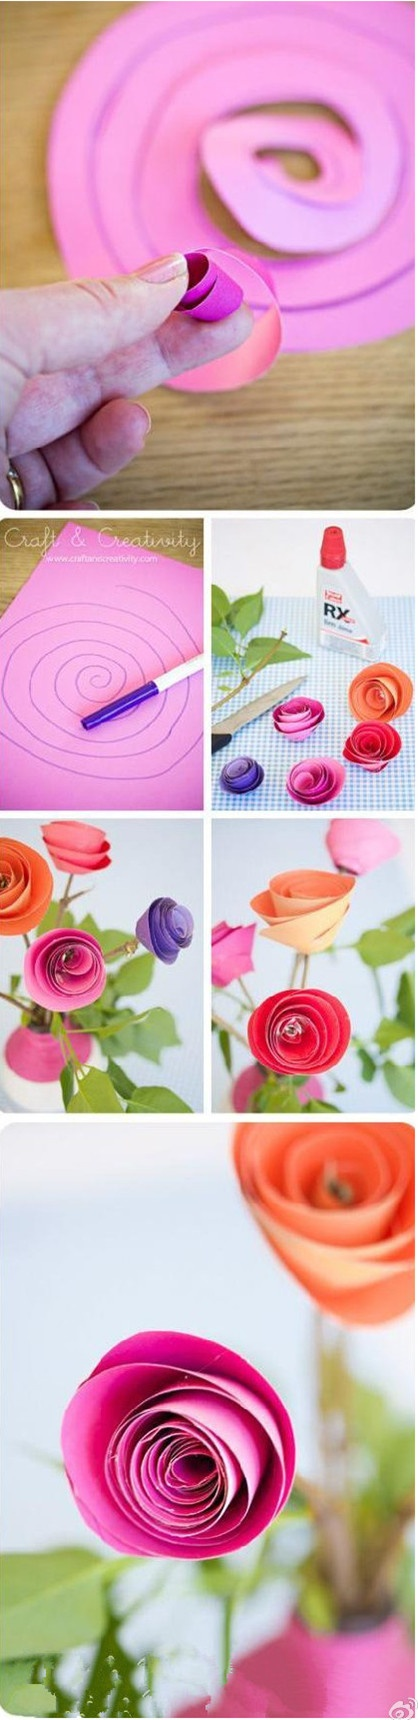 These are the roll up ranunculus looking flowers I like!